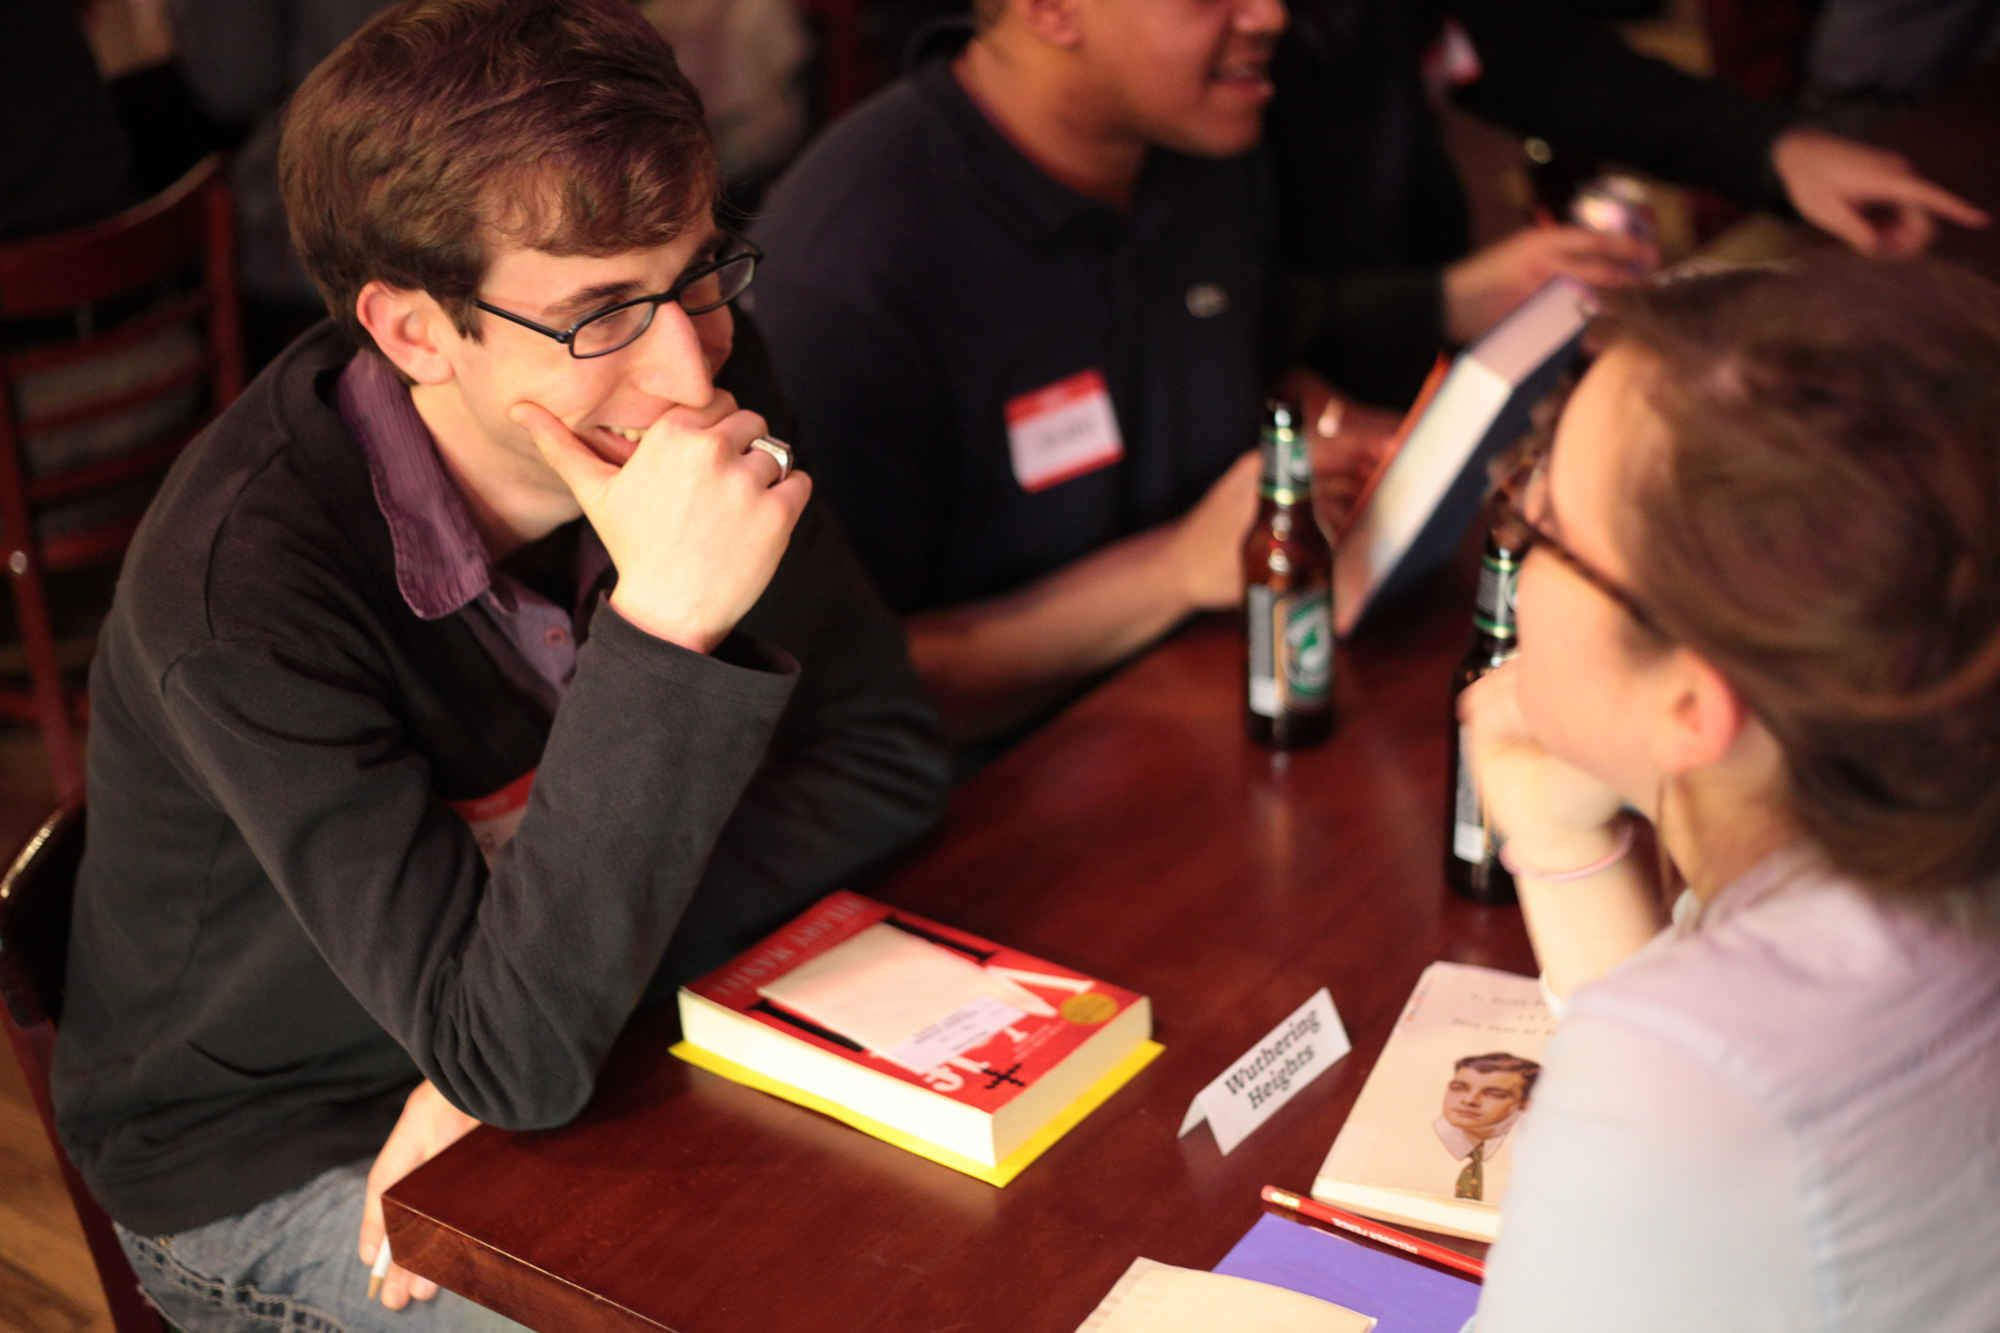 Speed dating at bars in nyc